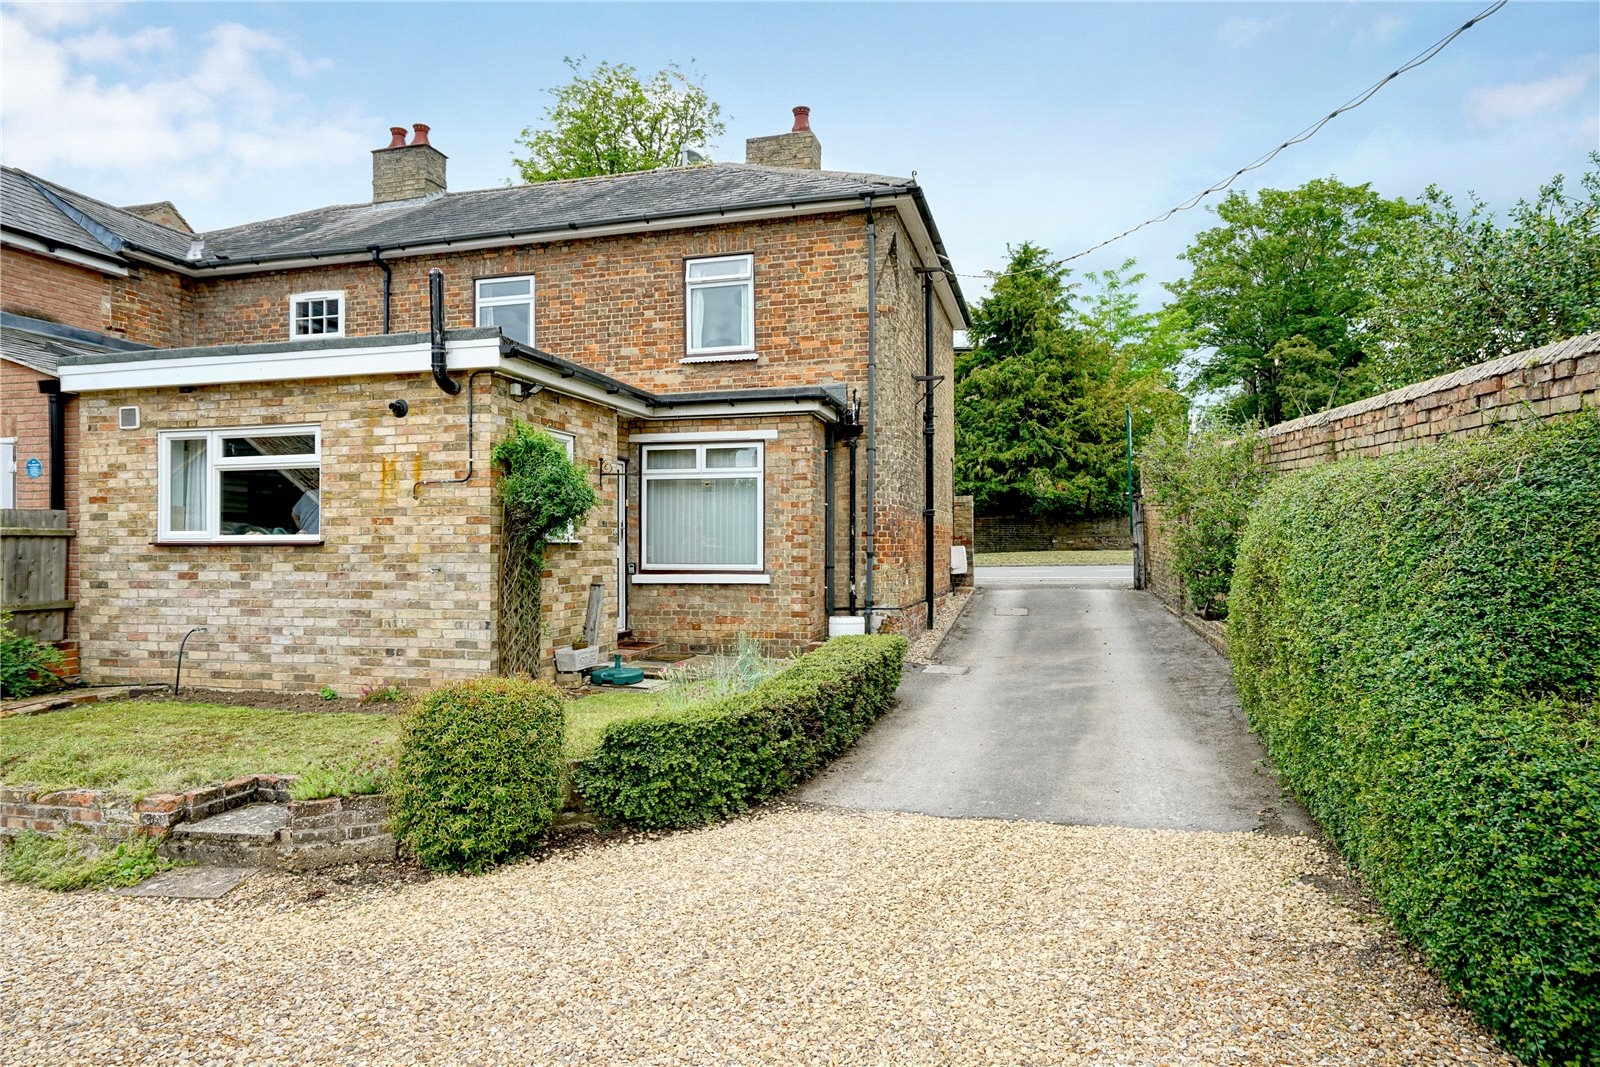 3 bed house for sale in Great North Road, Eaton Socon  - Property Image 6